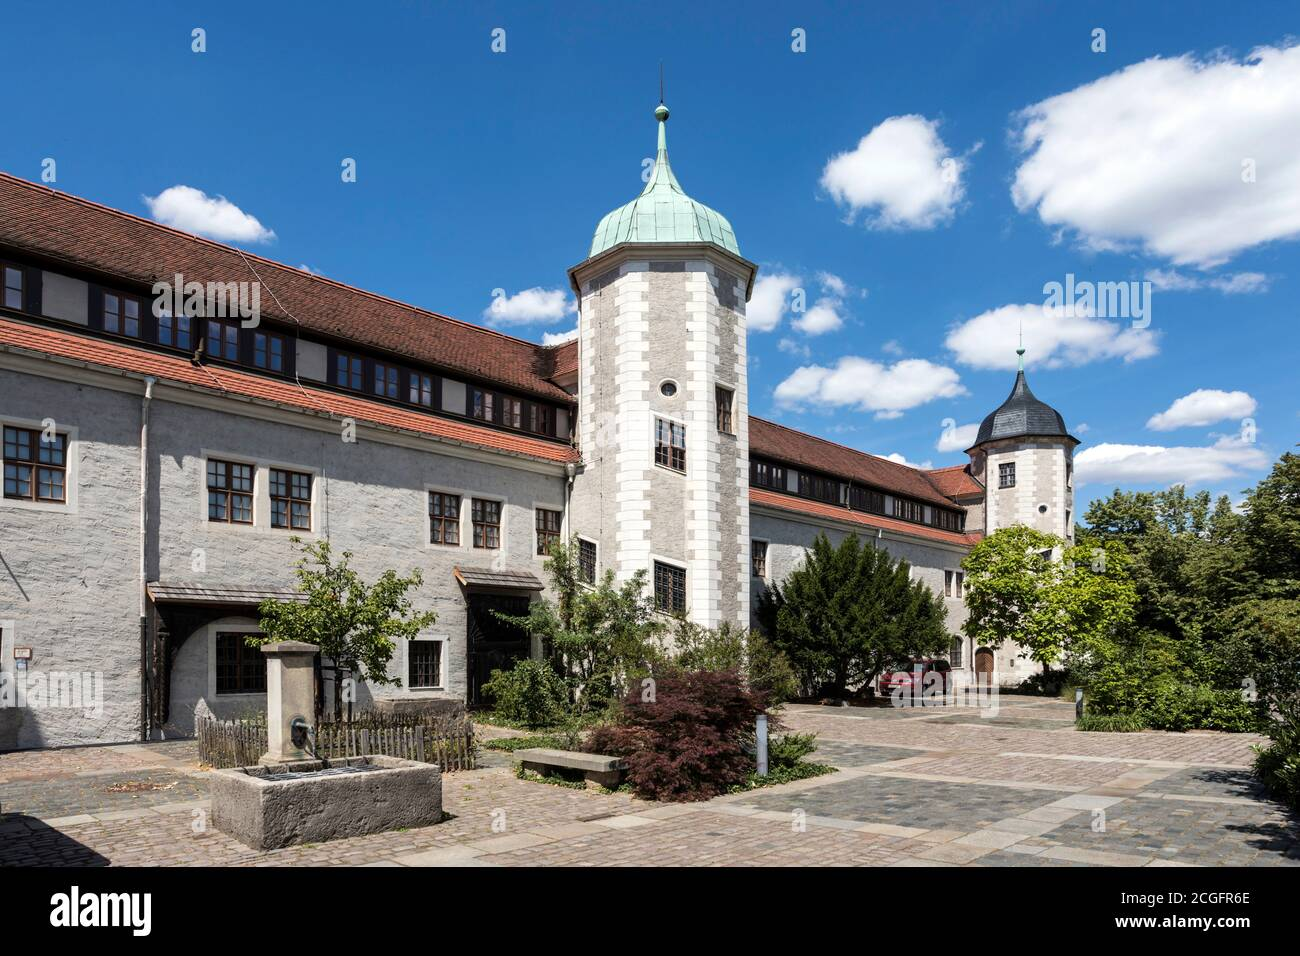 Museum for Saxon Folk Art in Dresden, housed in the Jägerhof from the 16th century - Stock Photo